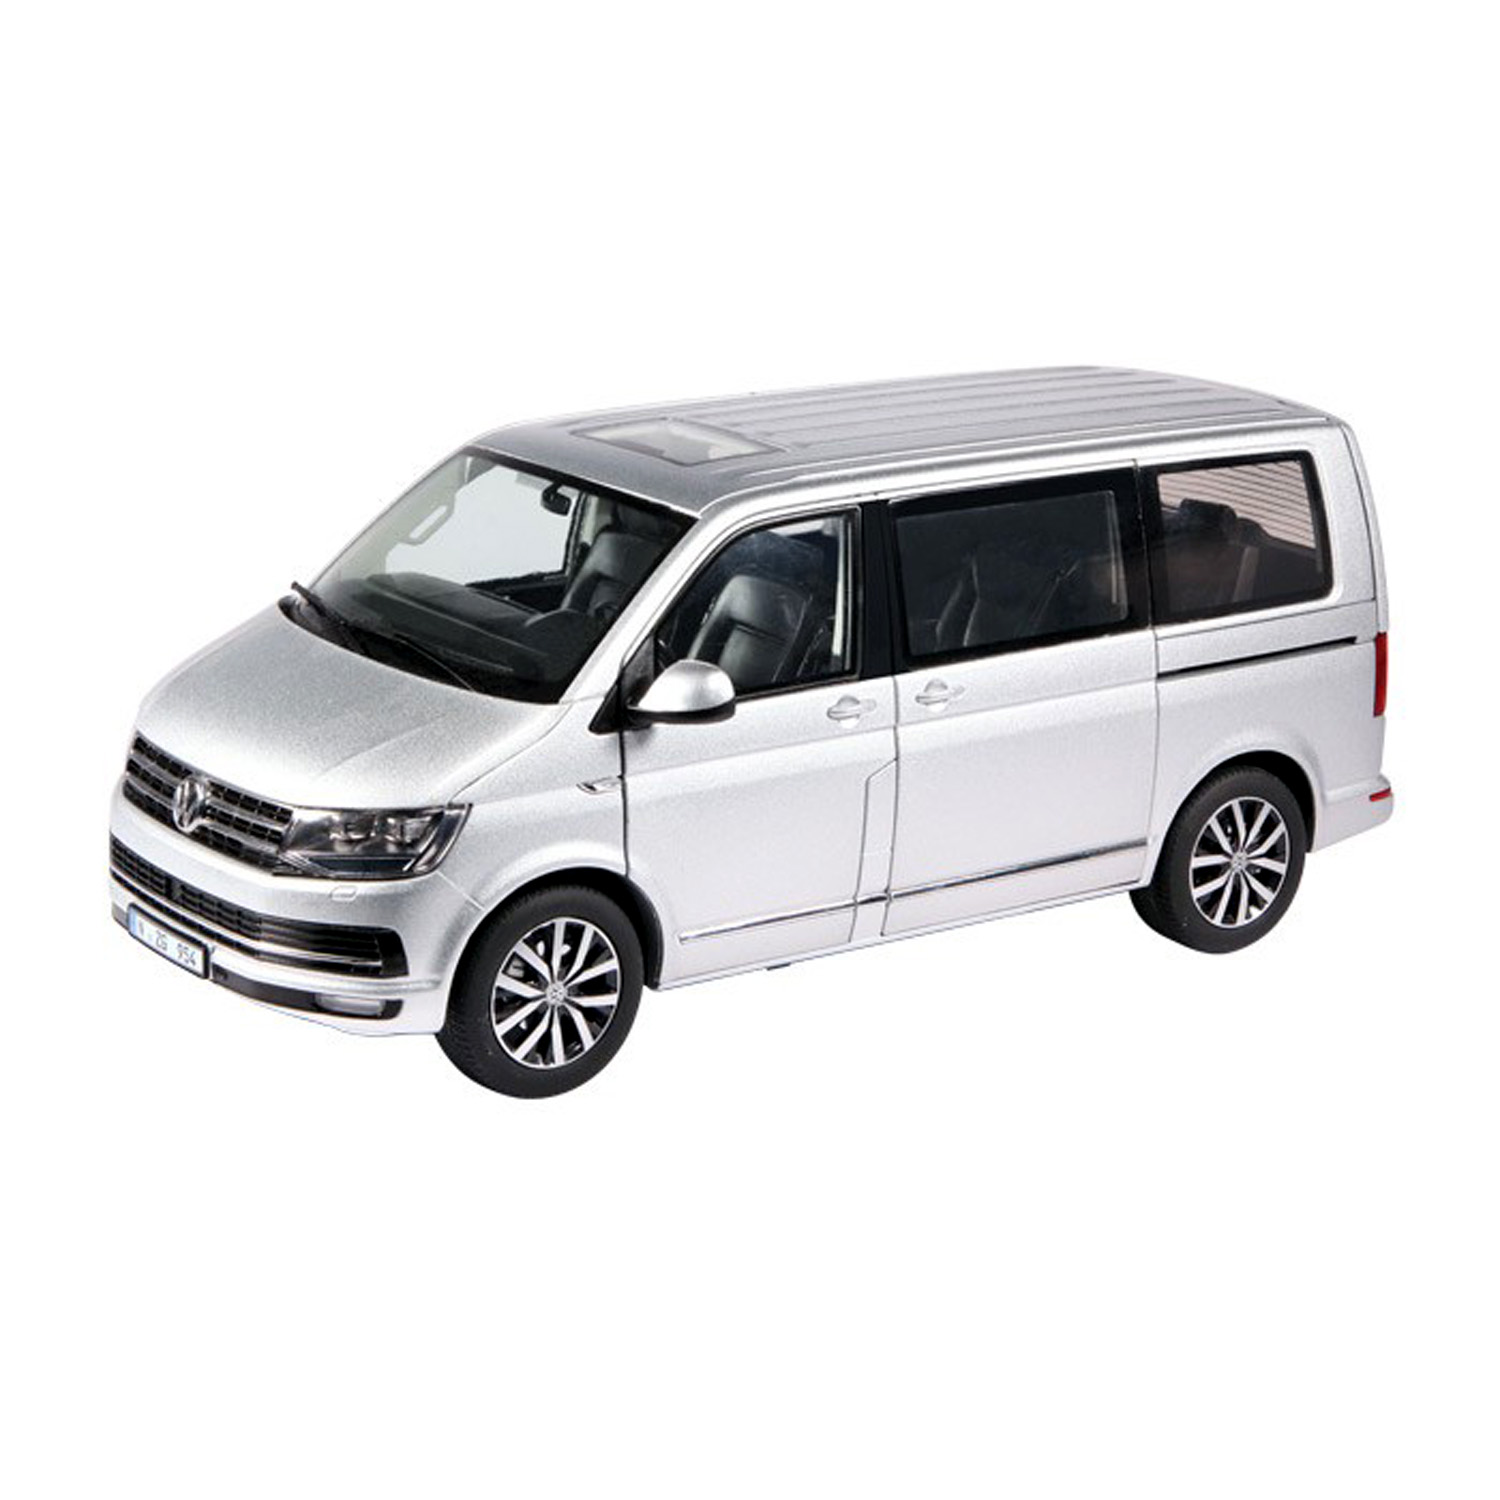 spiel modellkist 39 l shop vw t6 multivan highline silber online kaufen. Black Bedroom Furniture Sets. Home Design Ideas